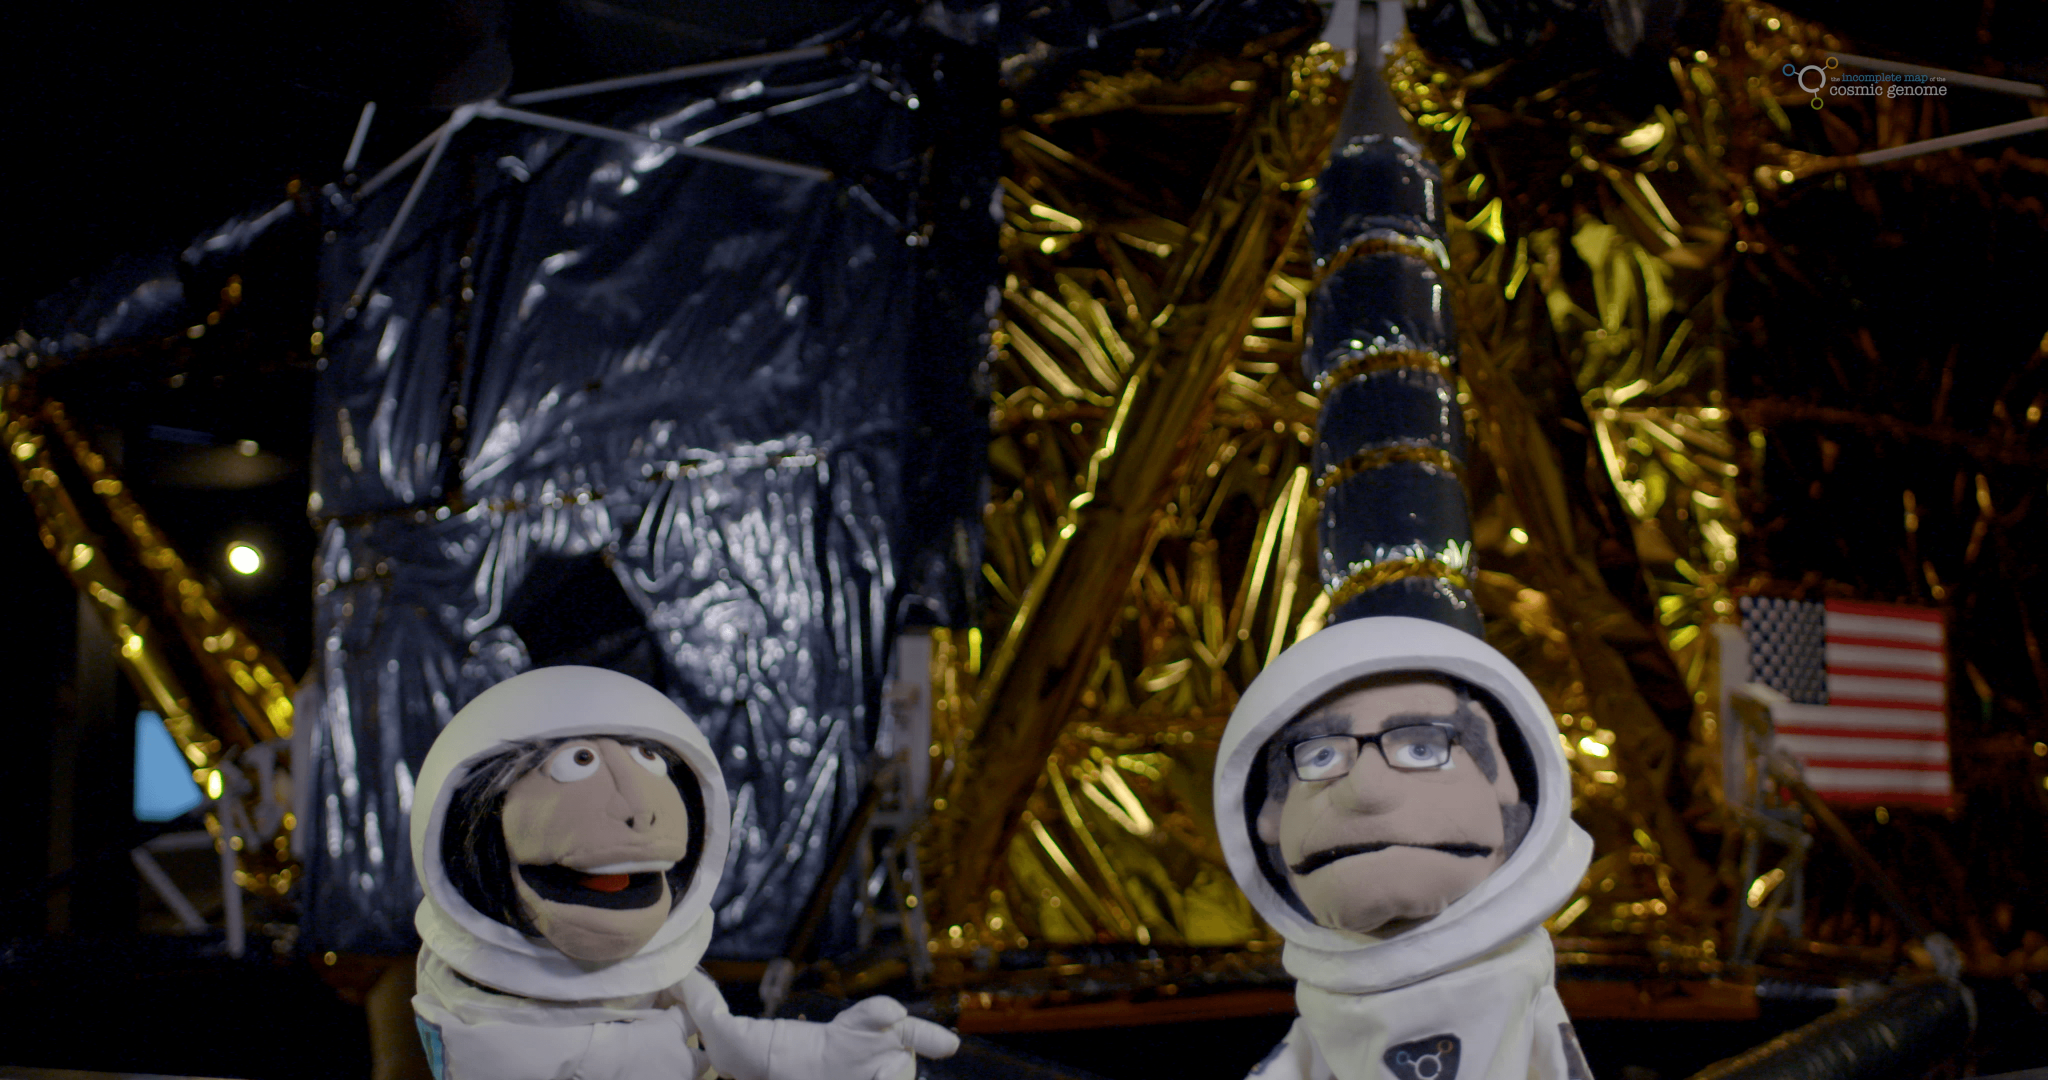 Brian Cox and Robin Ince's puppets go into space